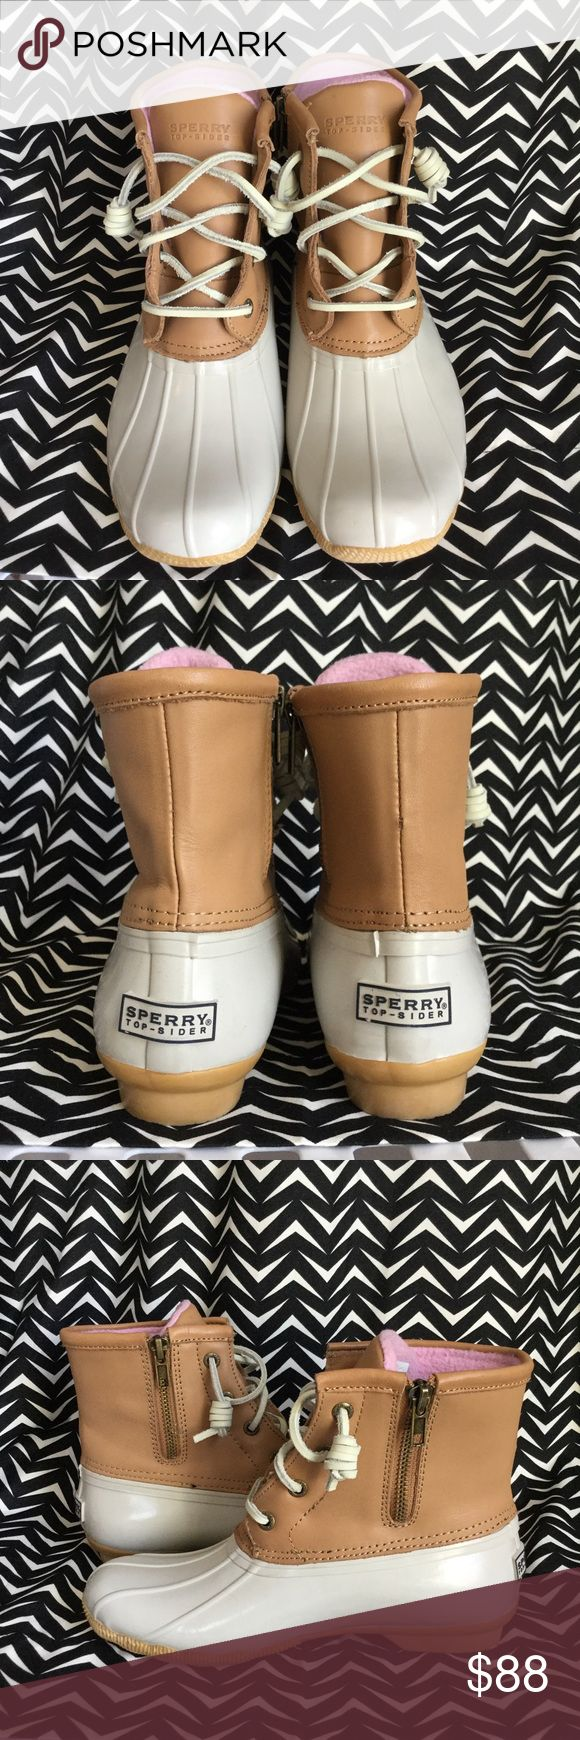 Sperry Saltwater Duck Boot Basically brand new. Worn once for maybe an hour. As you can see from the pics excellent like new condition. Women's size 5. Cream and tan color with pink fleece lining. See boot details on last picture! Sperry Top-Sider Shoes Winter & Rain Boots